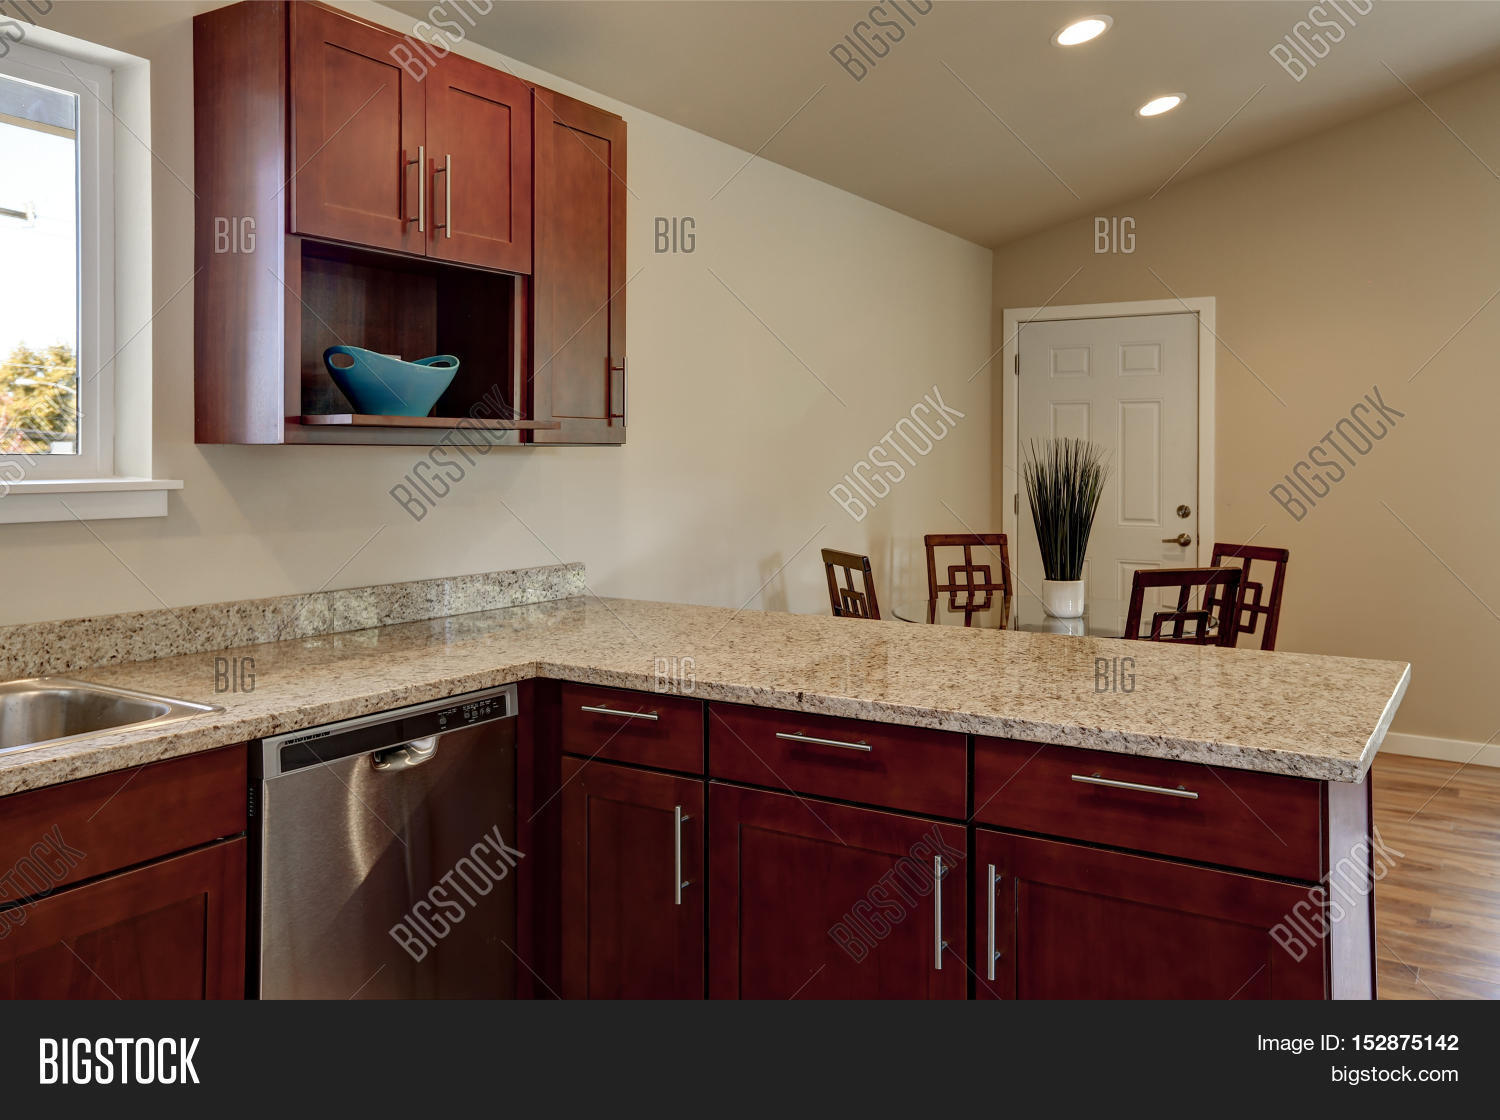 View burgundy kitchen cabinets image photo bigstock for Burgundy kitchen cabinets pictures